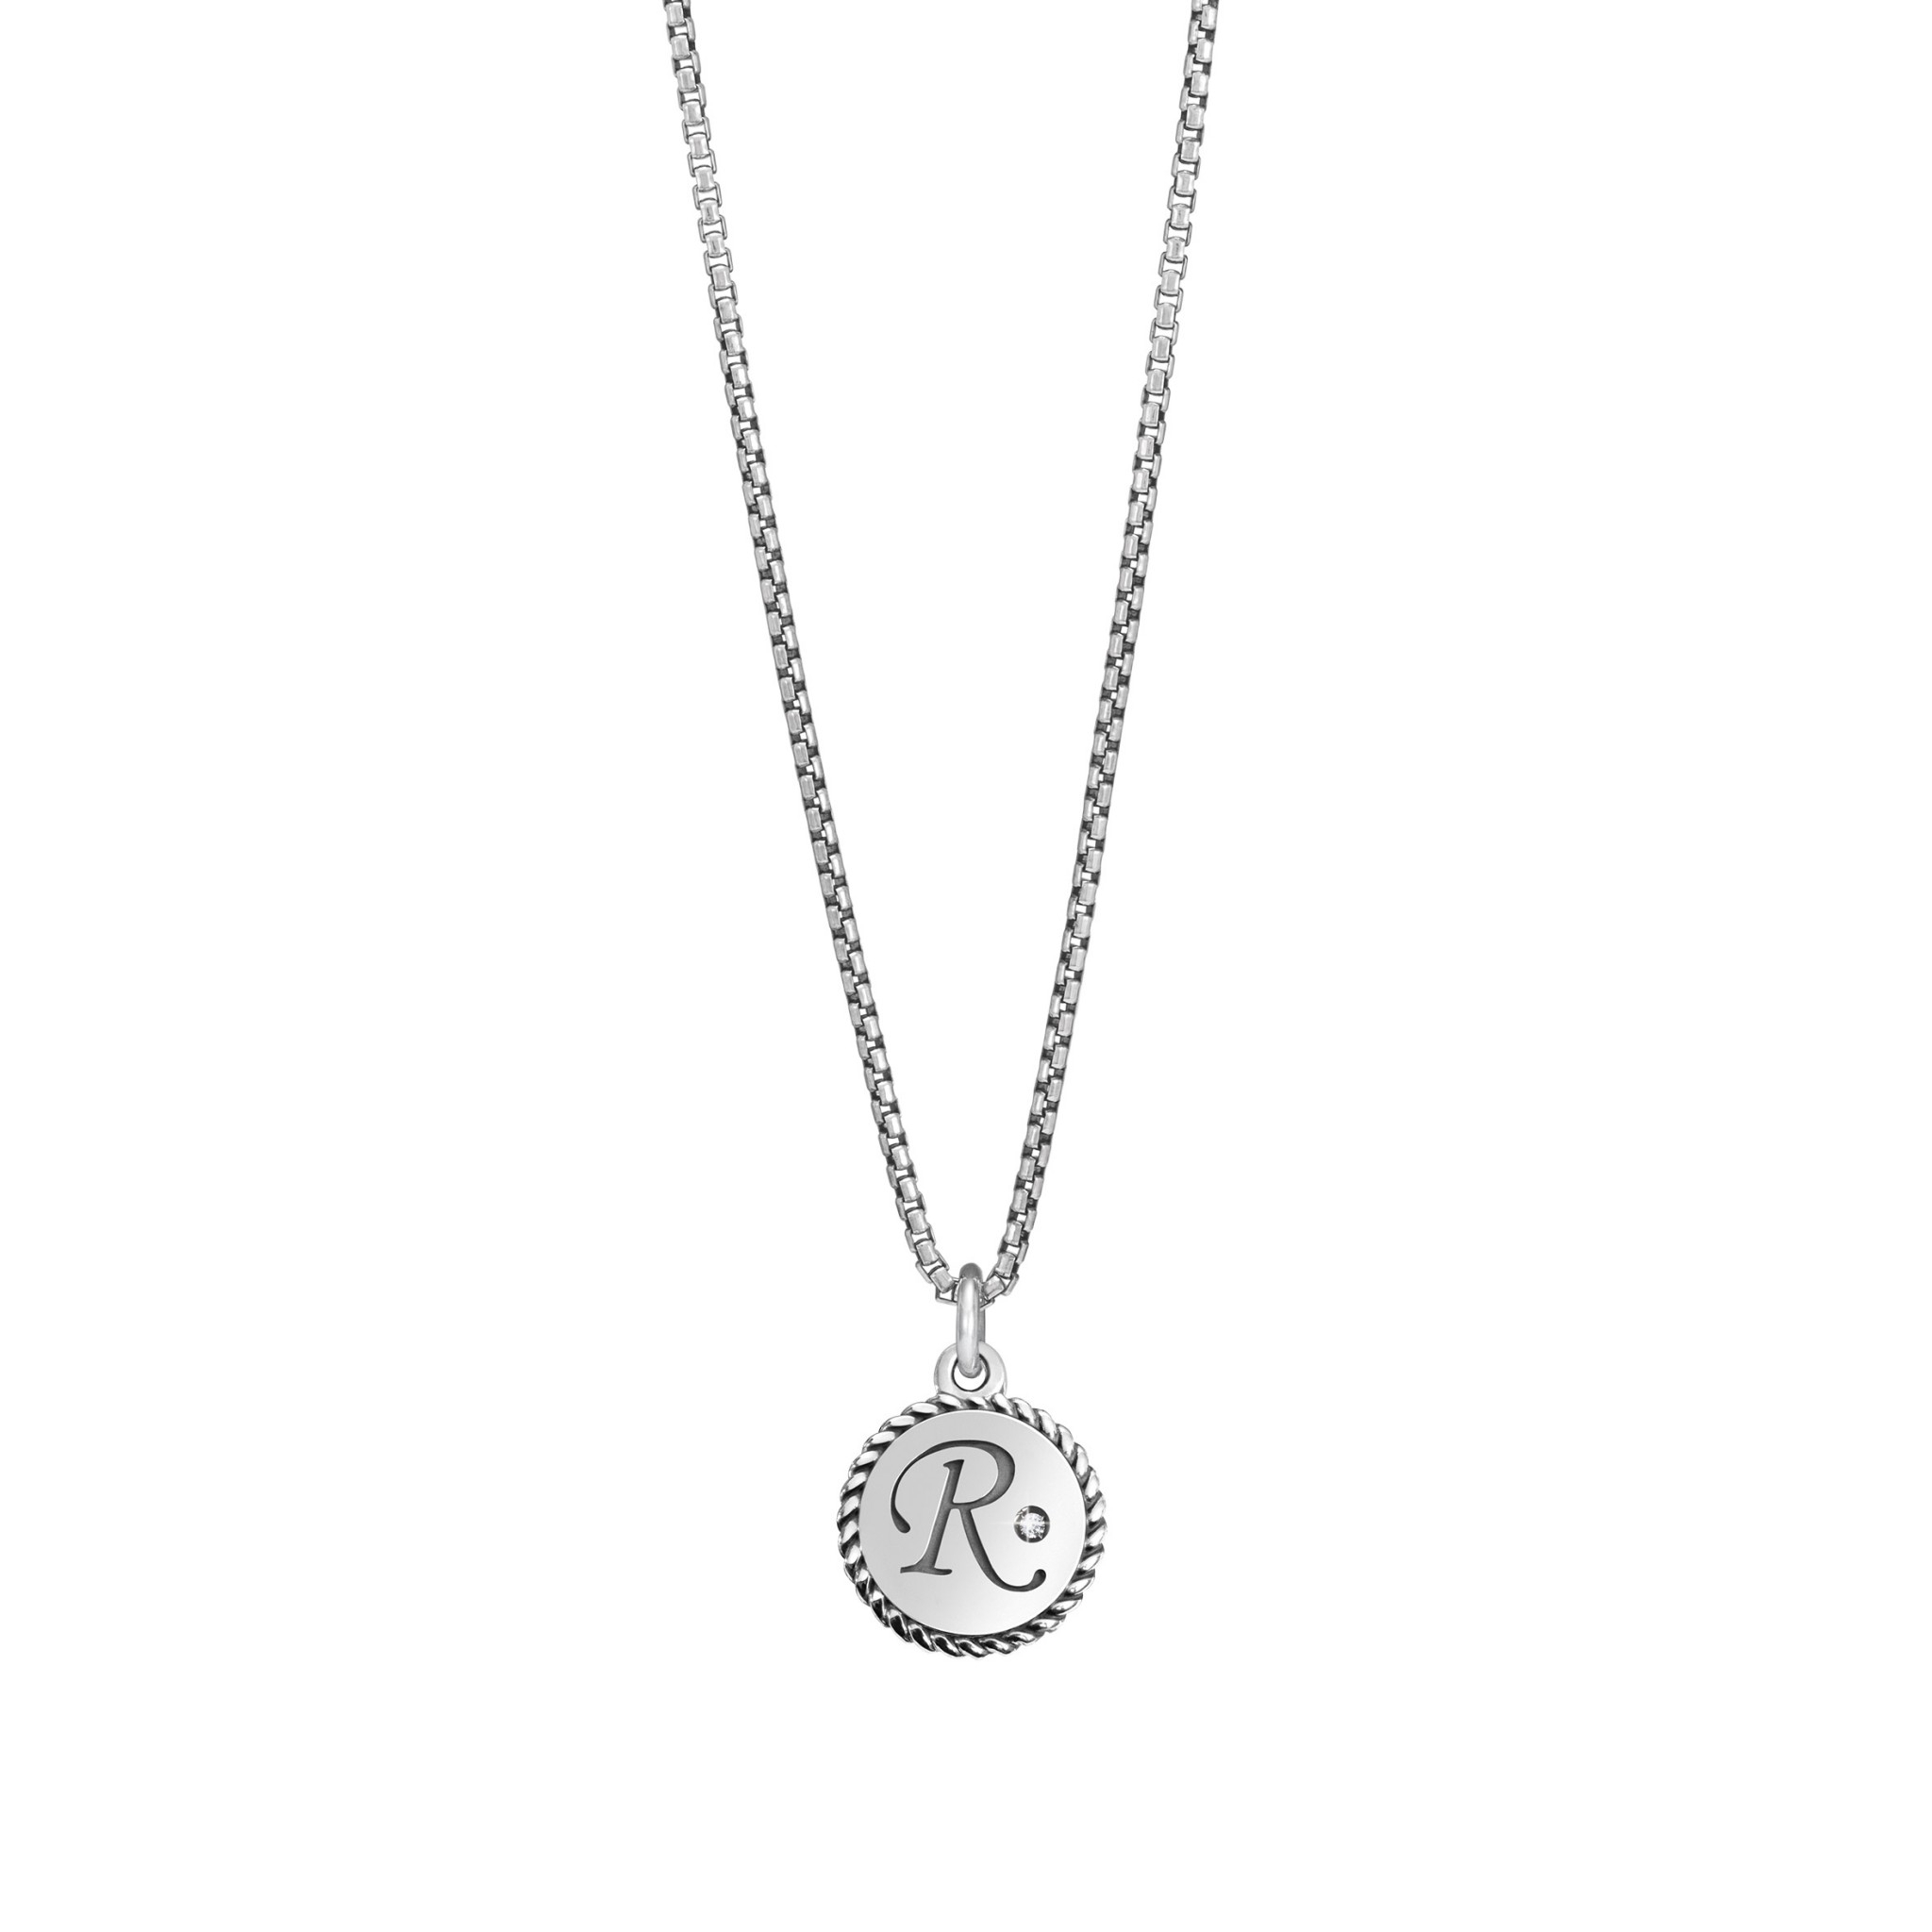 Necklace With Letter R In Silver And Gemstone In Most Recent Letter A Alphabet Locket Element Necklaces (View 9 of 25)